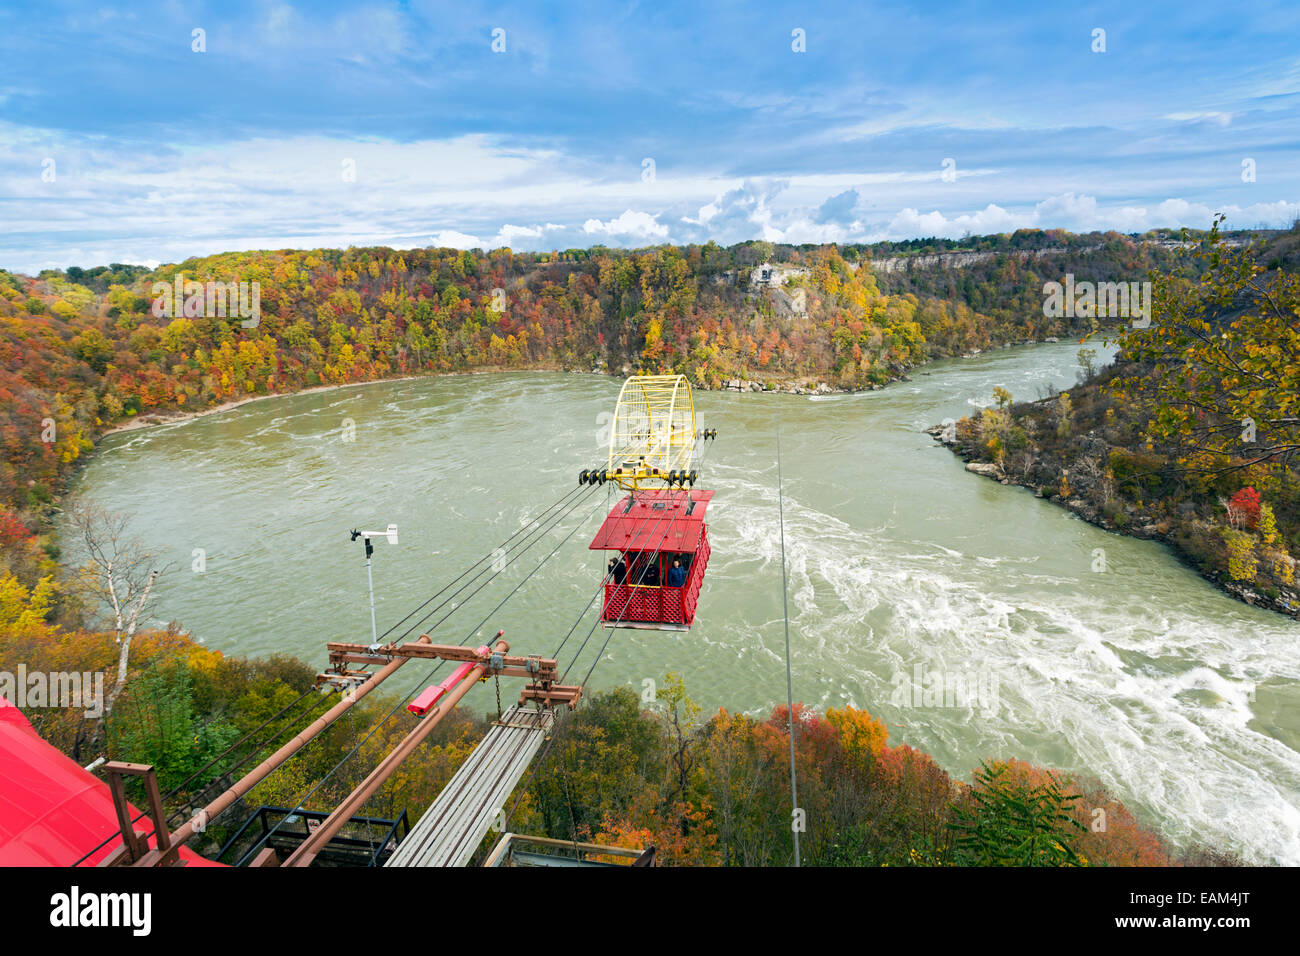 Canada,Ontario,Niagara Falls, Spanish Aero car crossing the Niagara Gorge - Stock Image